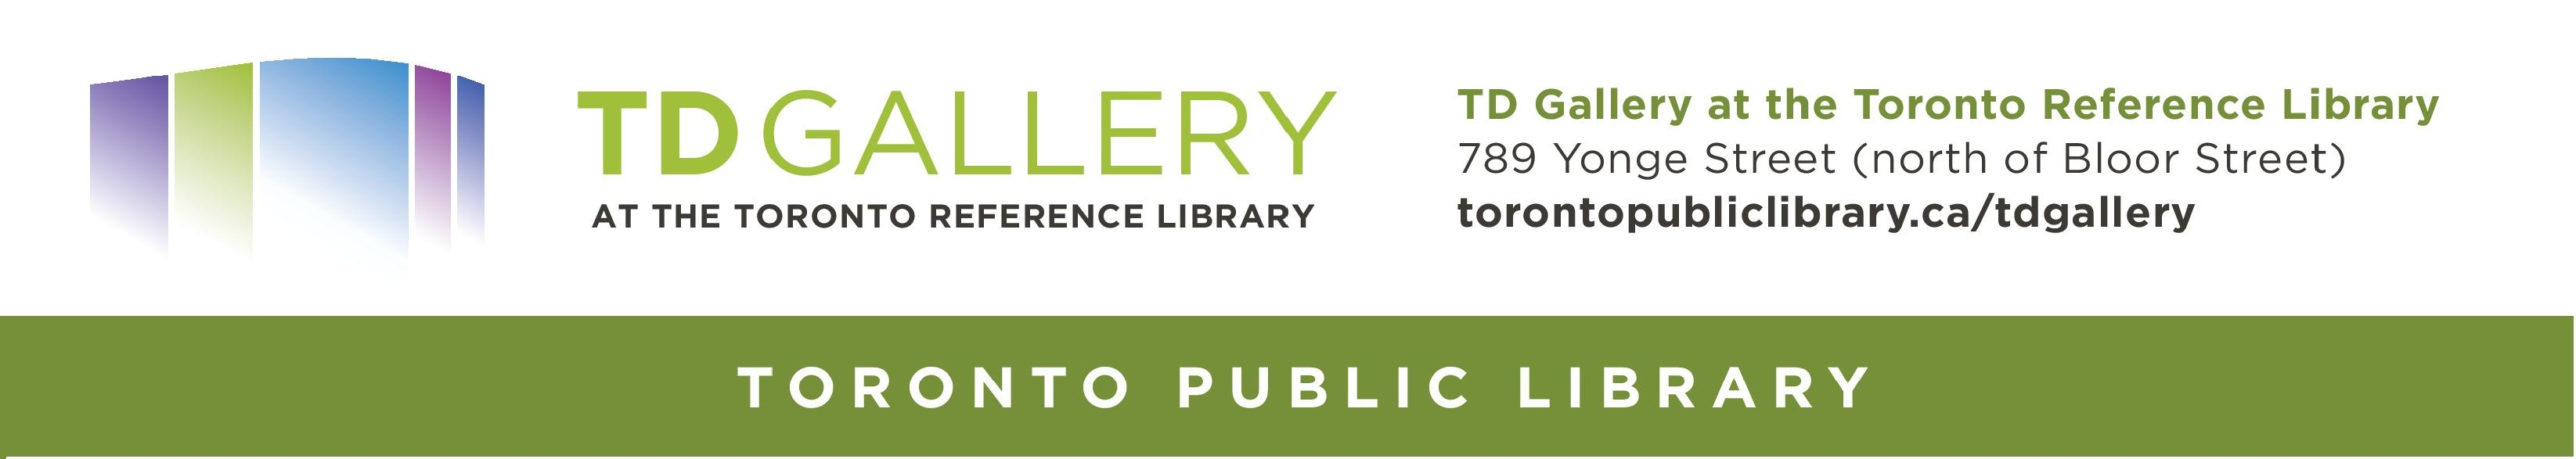 TD Gallery Footer